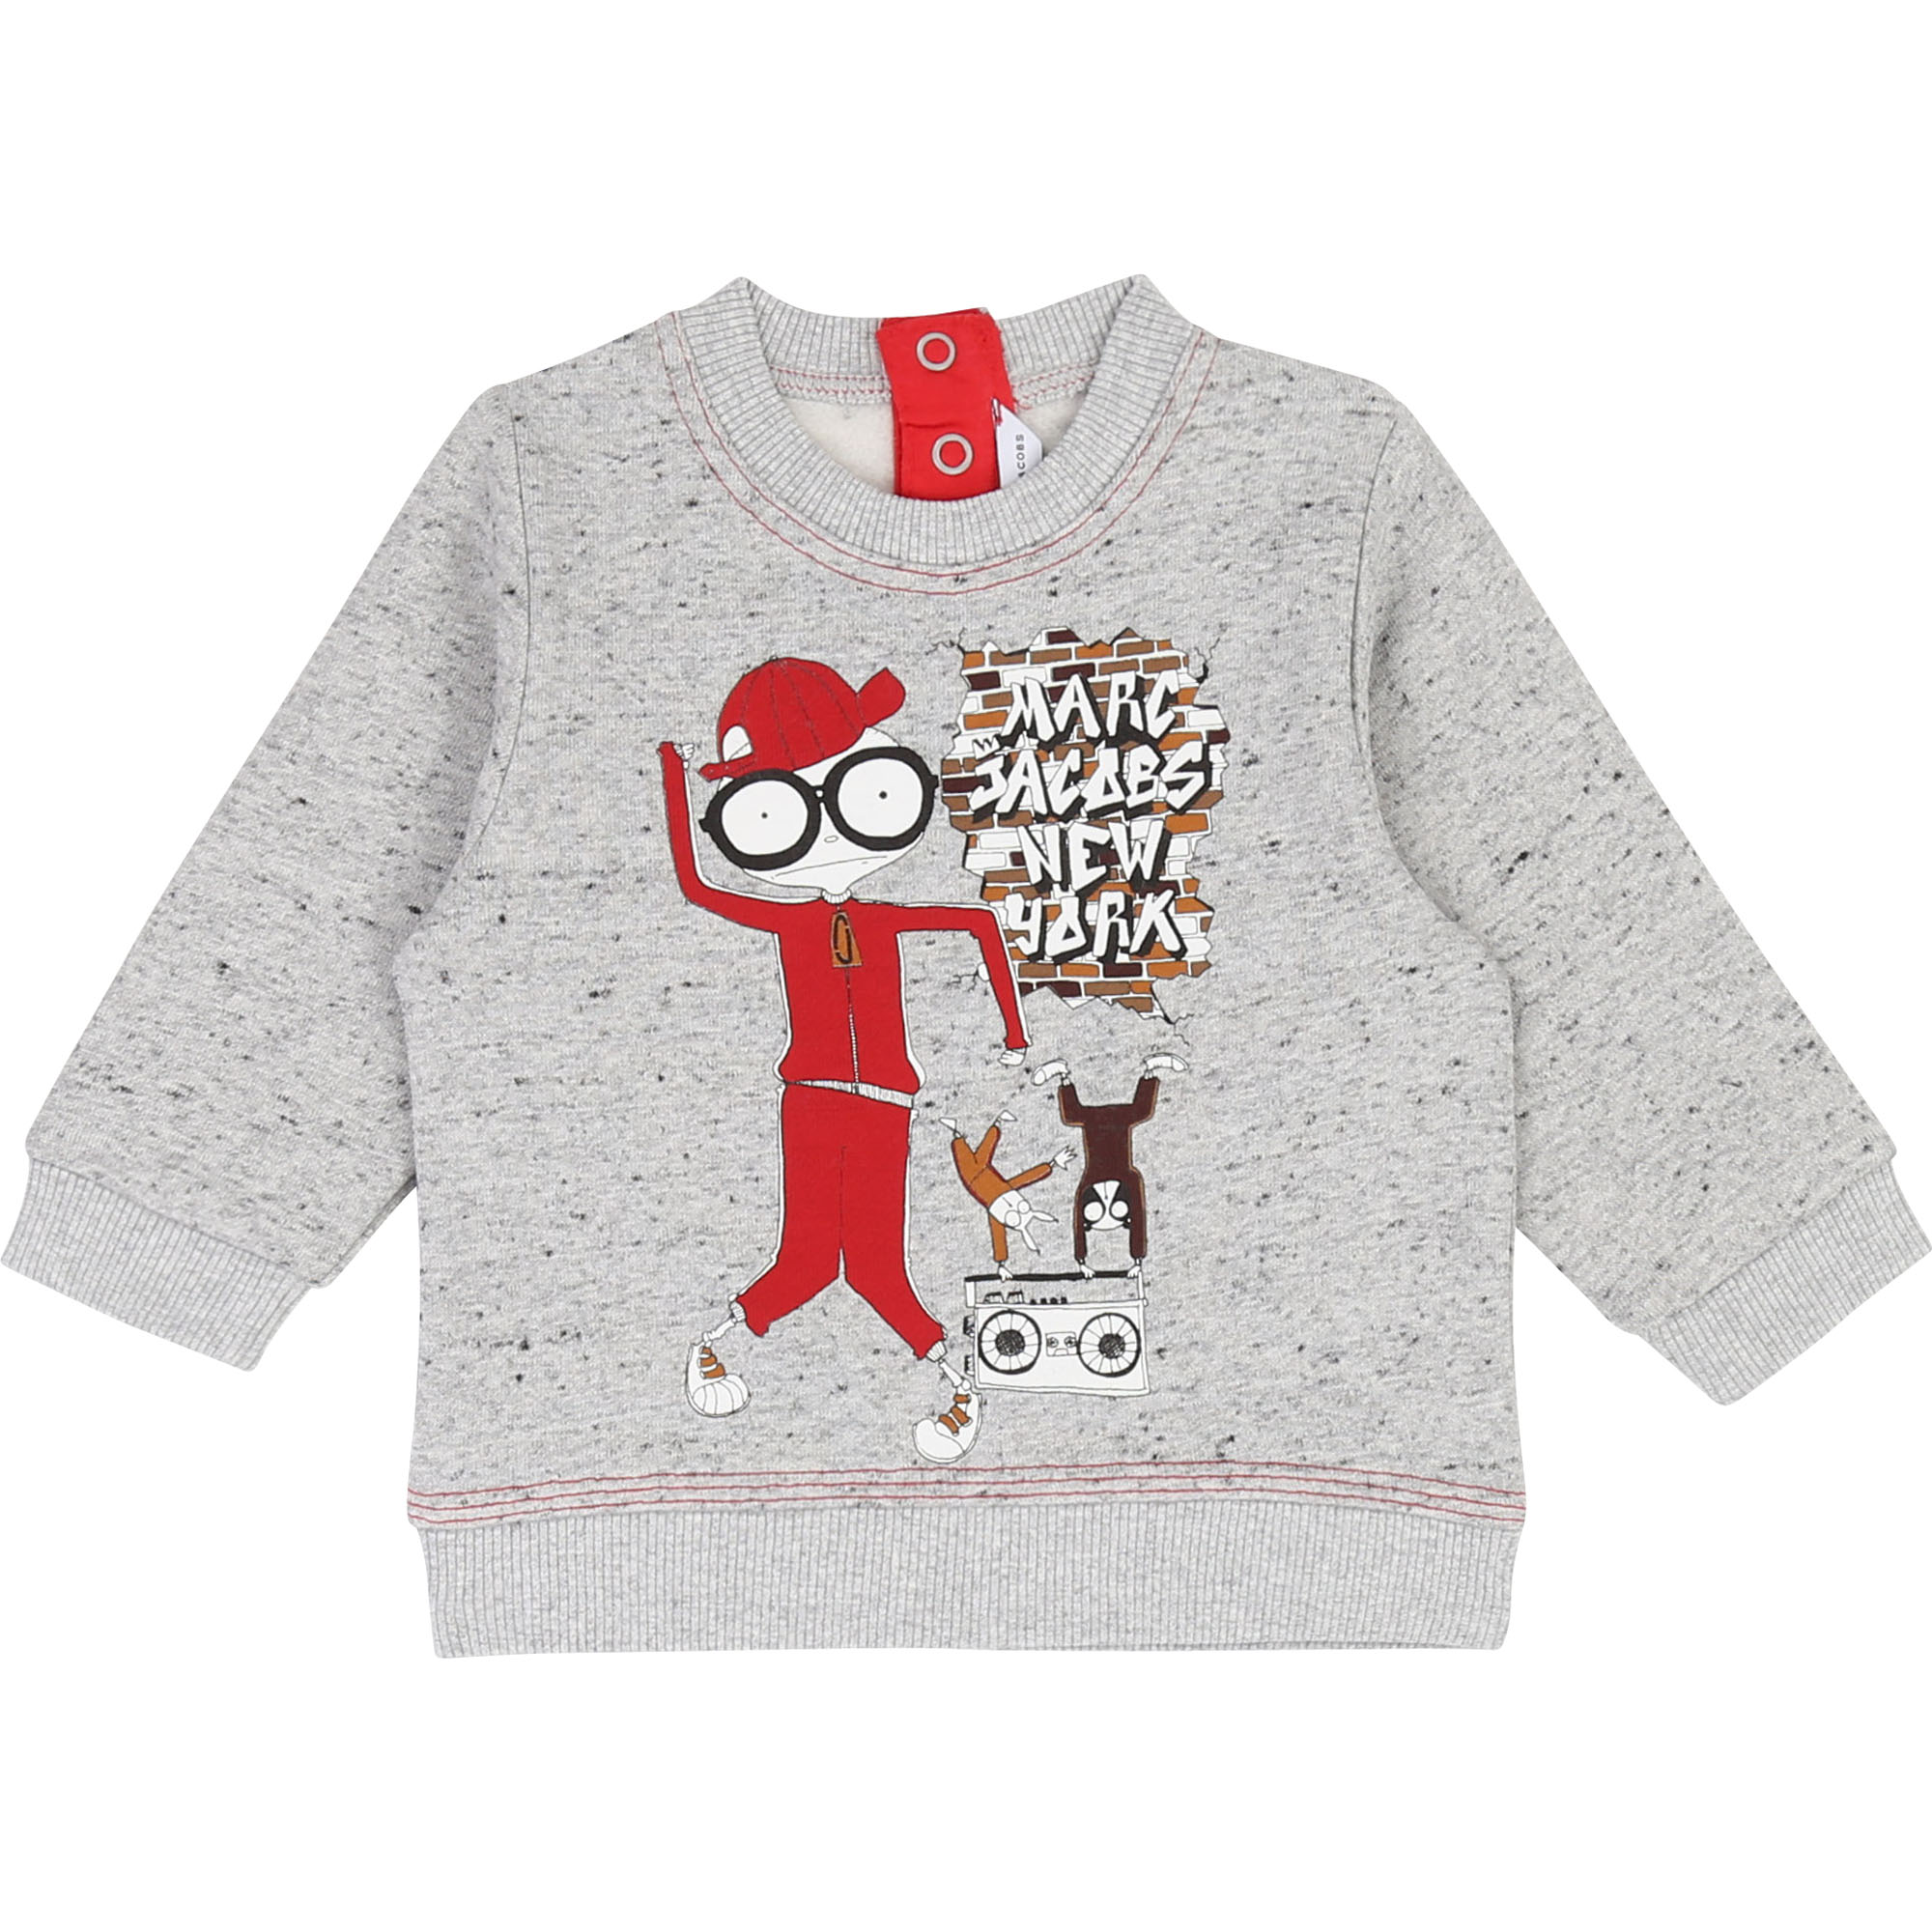 SWEATSHIRT THE MARC JACOBS for BOY